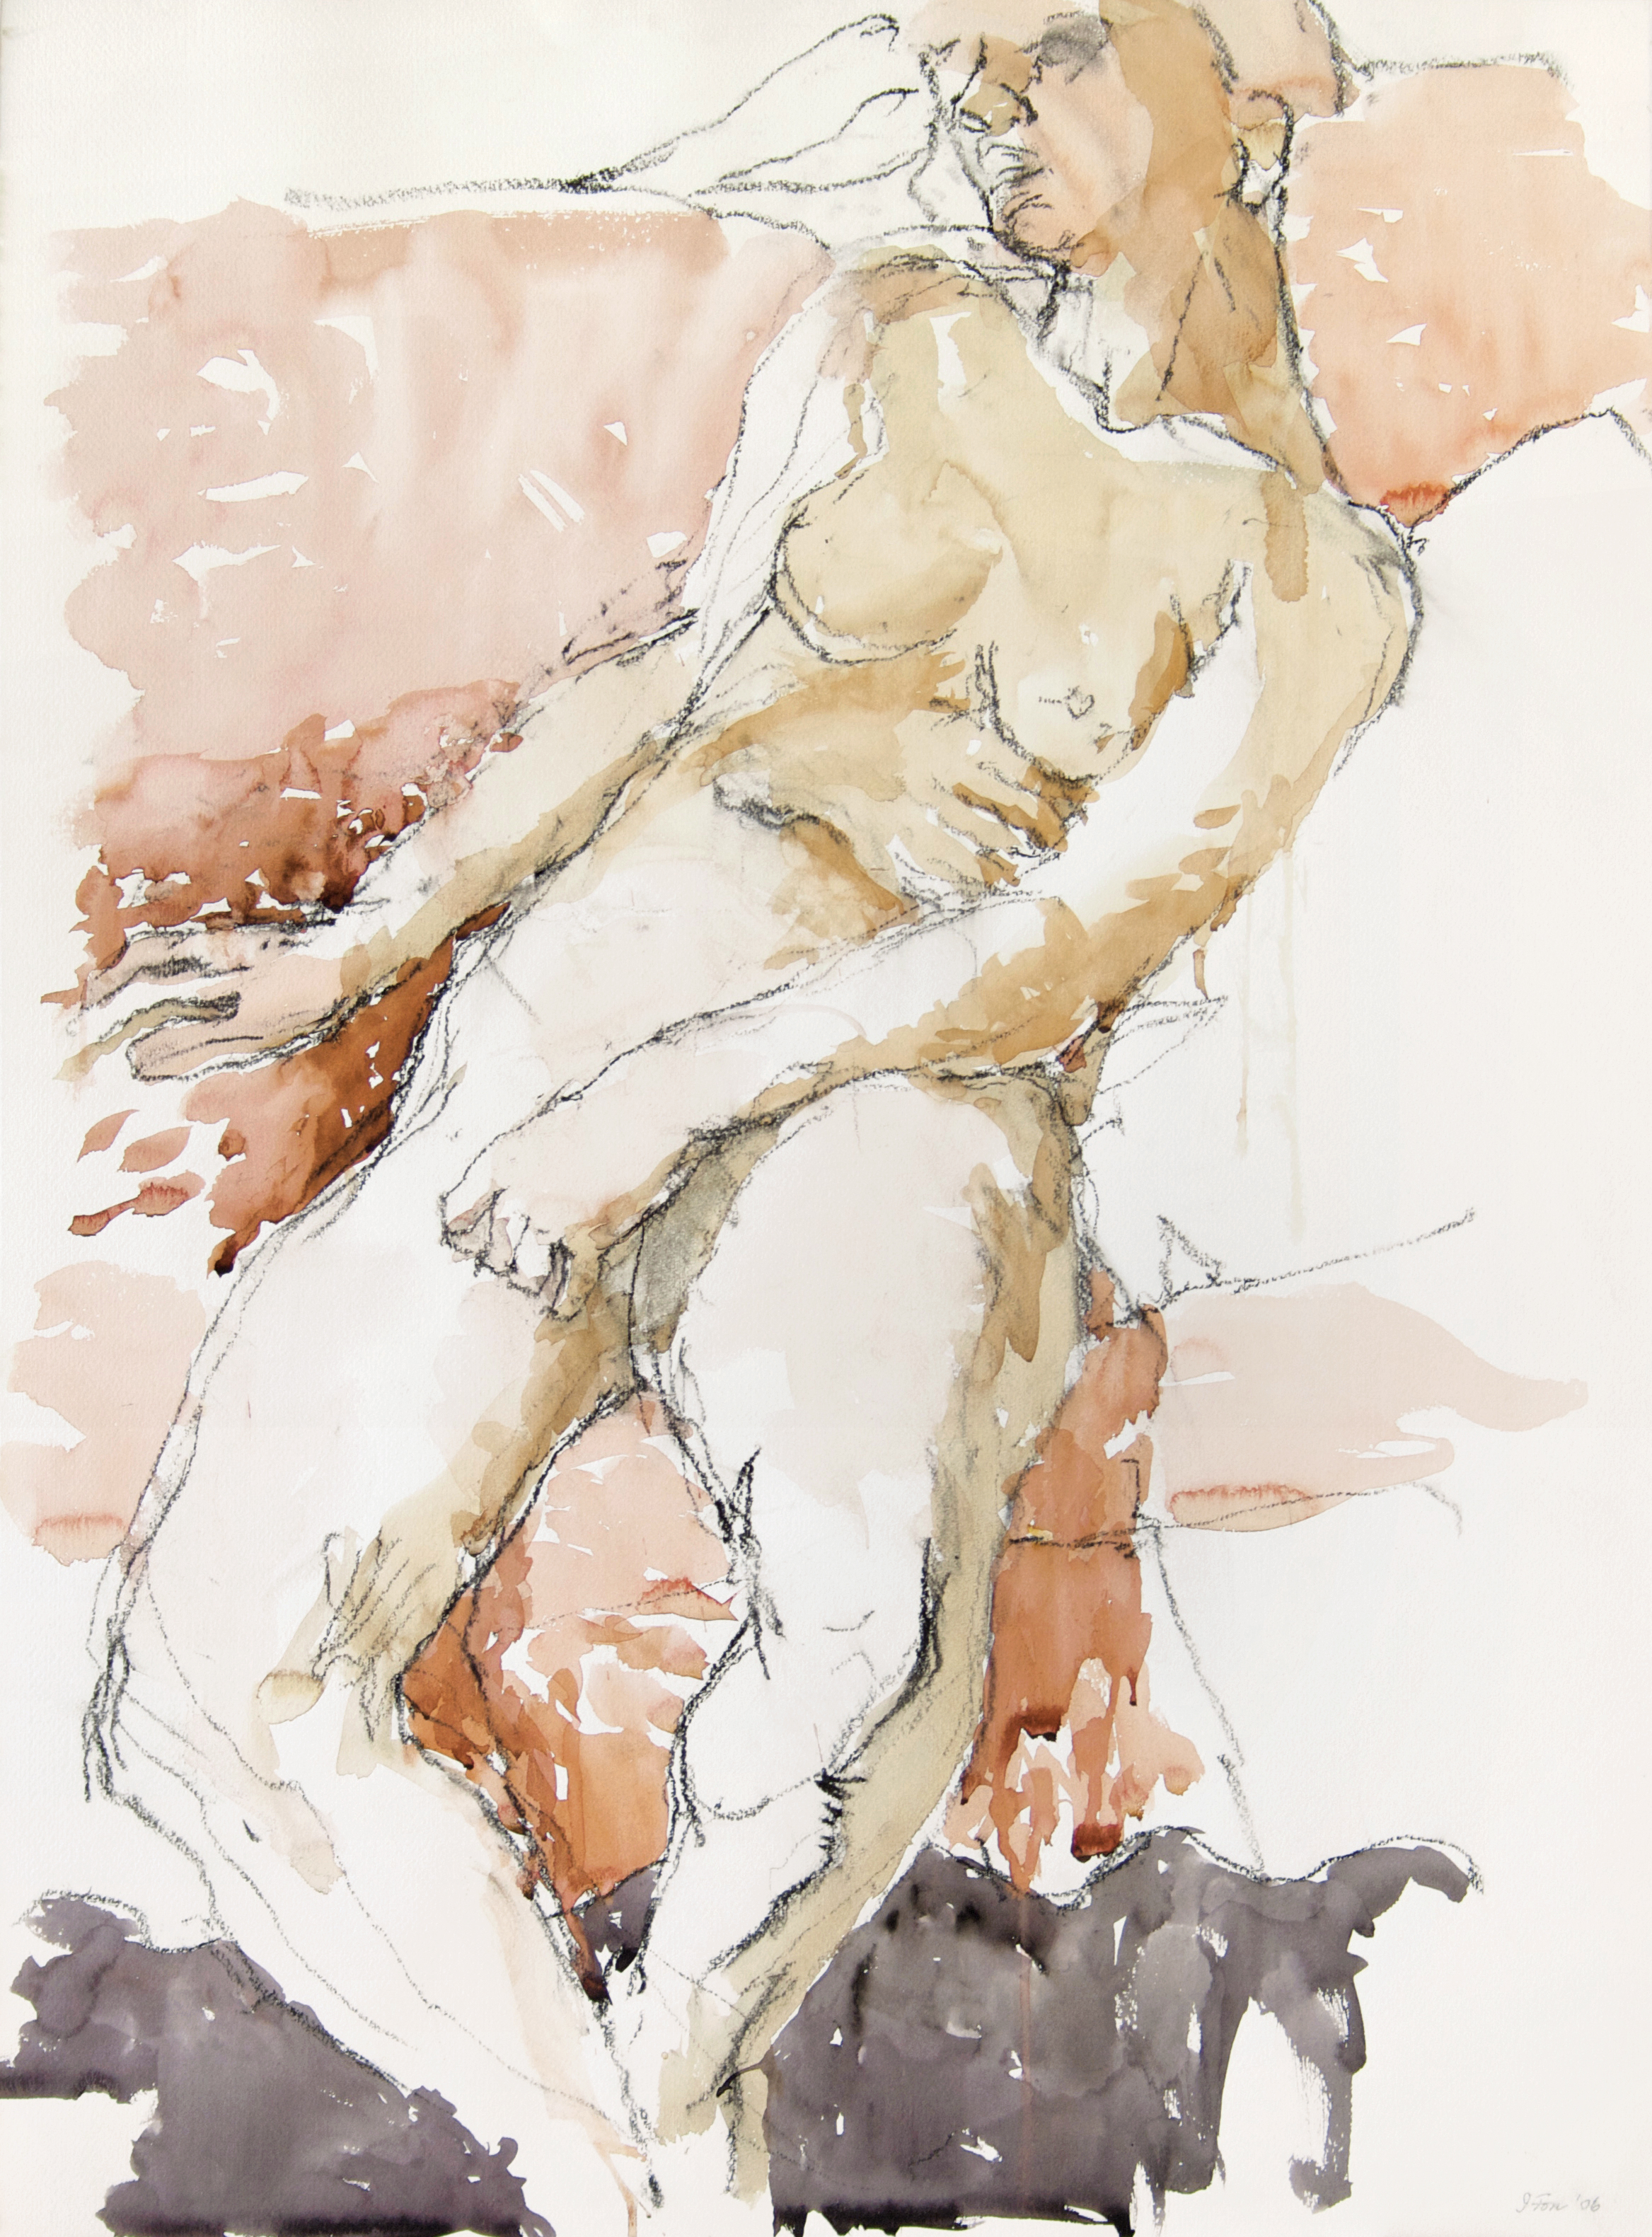 2006_Reclining_Nude_watercolour_and_charcoal_on_paper_30x22in_WPF414.jpg